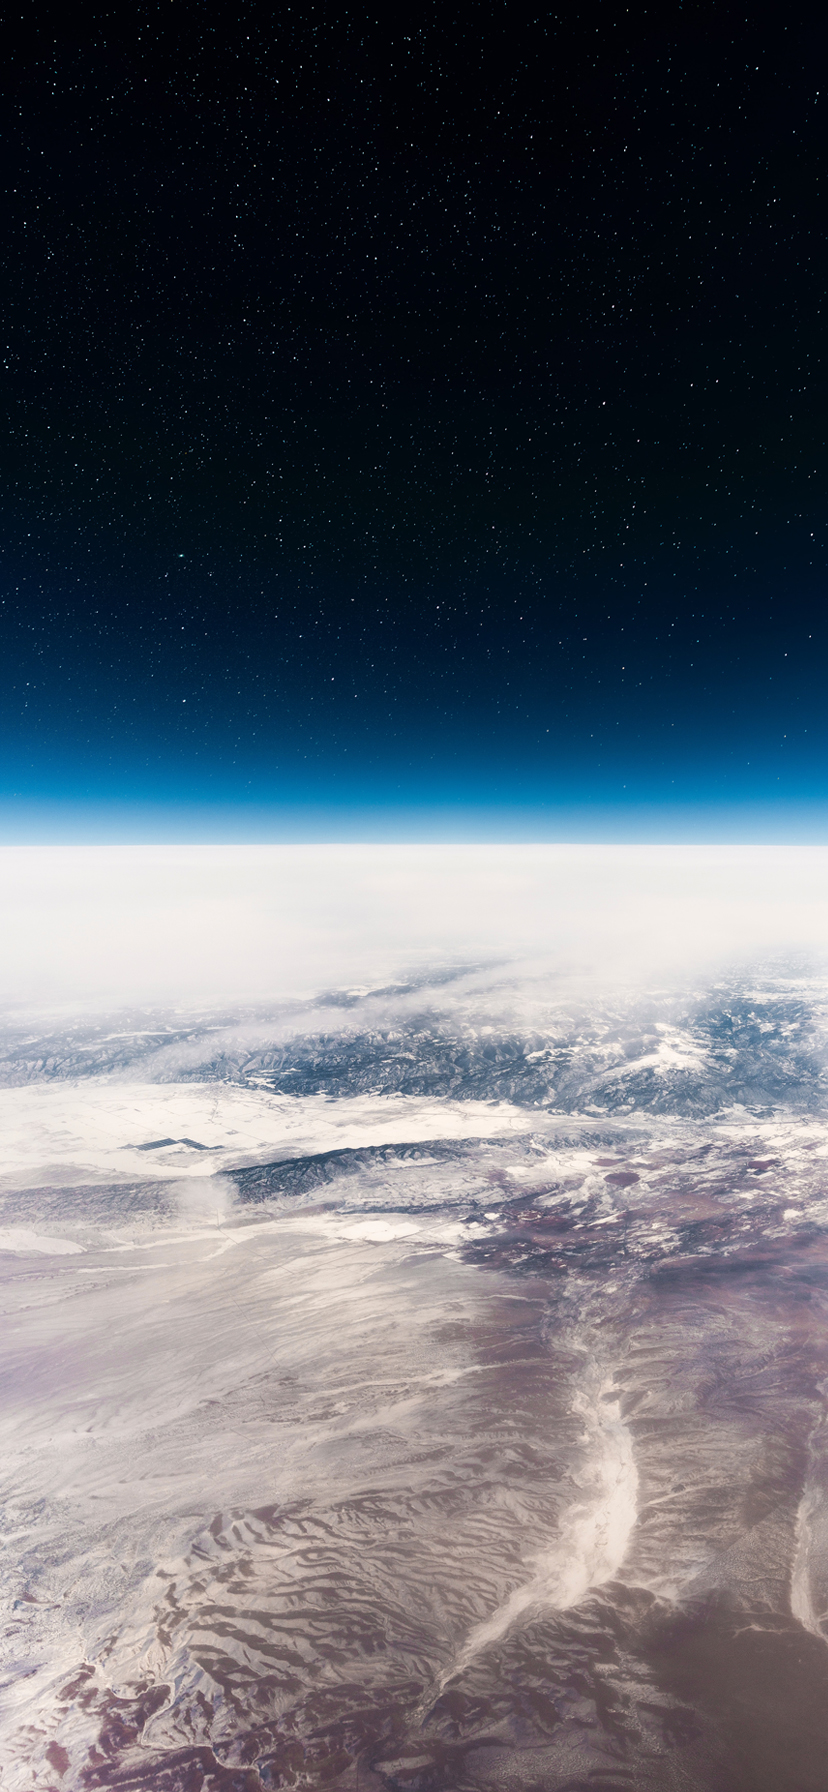 Free Iphone 11 Wallpaper Download 05 Of 20 Outer Space Earth View Hd Wallpapers Wallpapers Download High Resolution Wallpapers